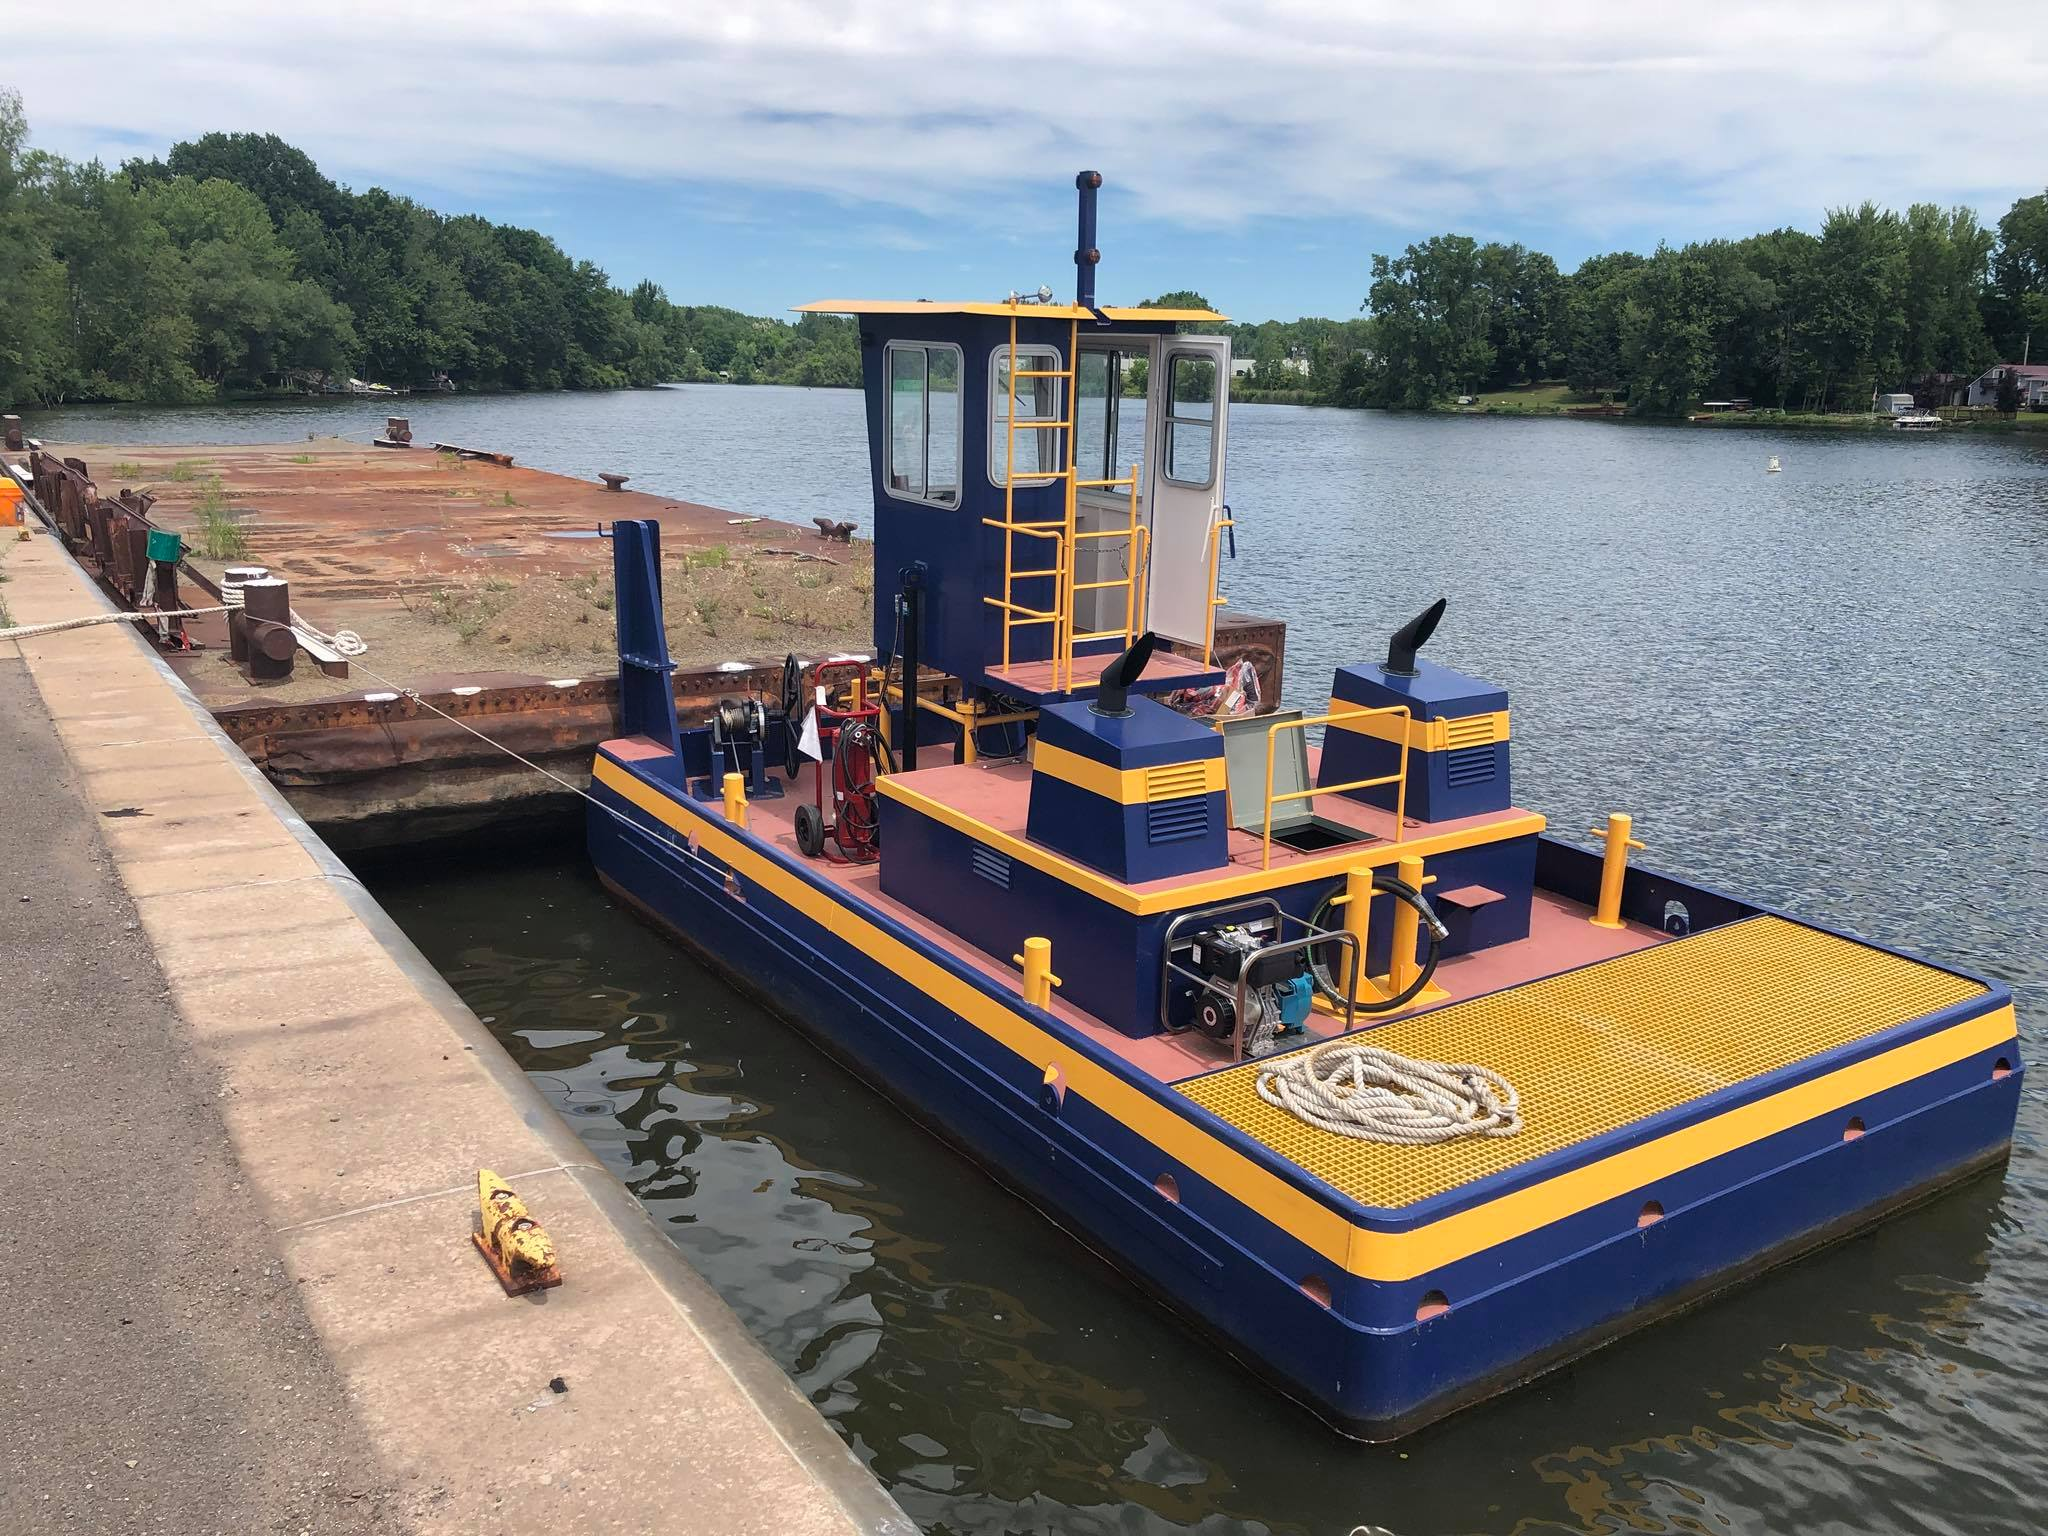 NYs canal corporation/ NY power authority - ASSEMBLY OF & TRAINING ON NEW TRUCKABLE TUGS